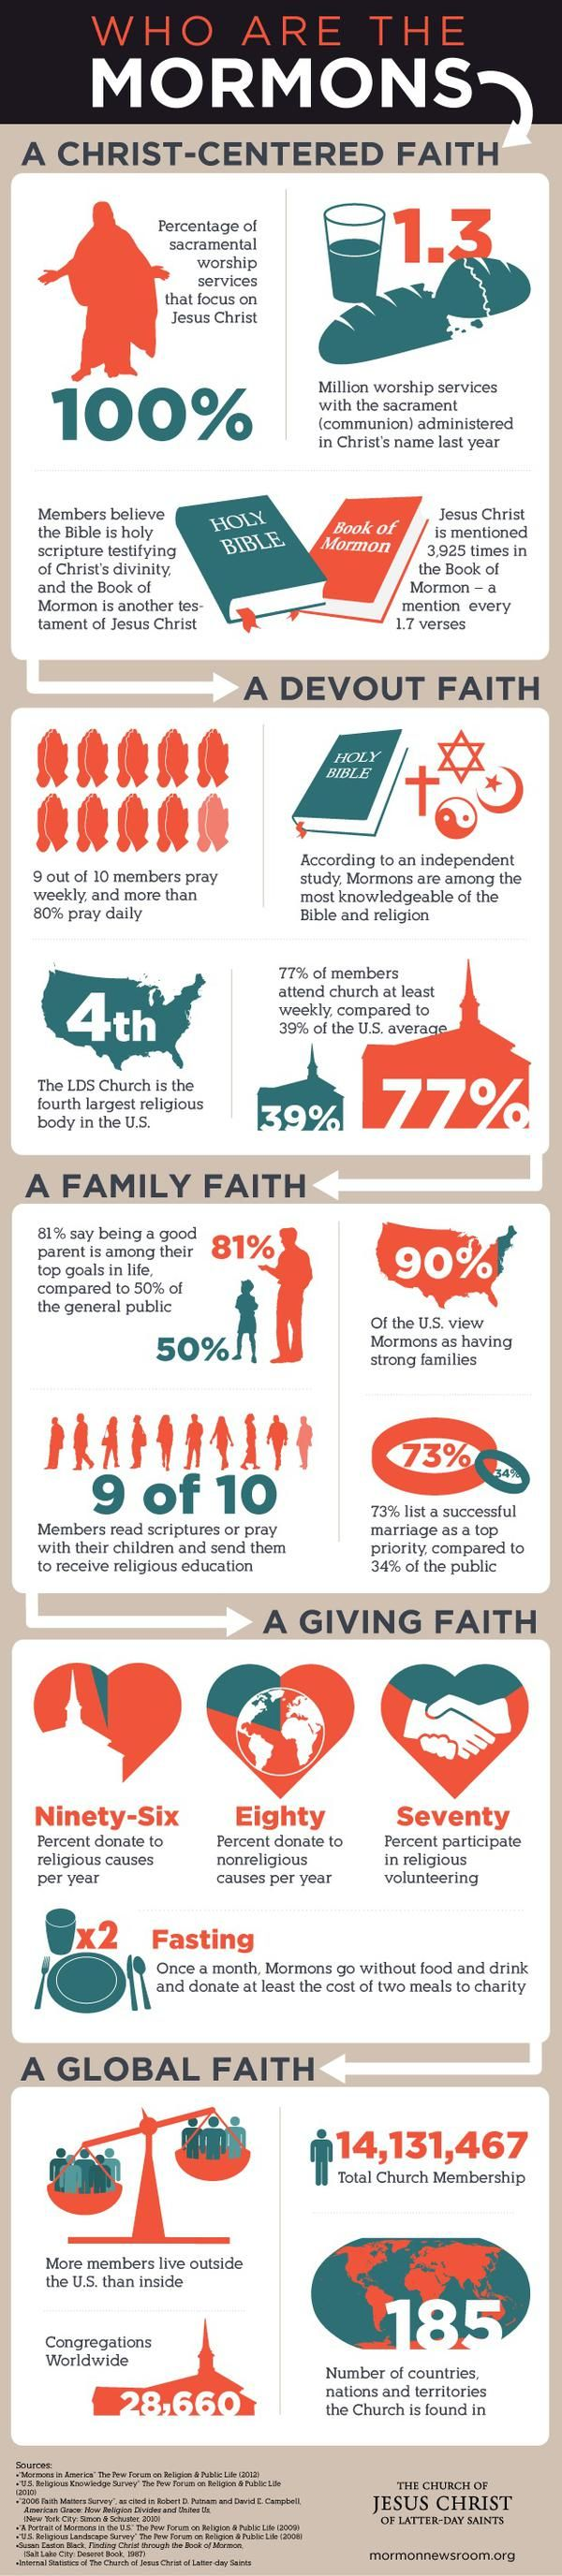 Proud member of The Church of Jesus Christ of Latter Day Saints! Mormon infographic